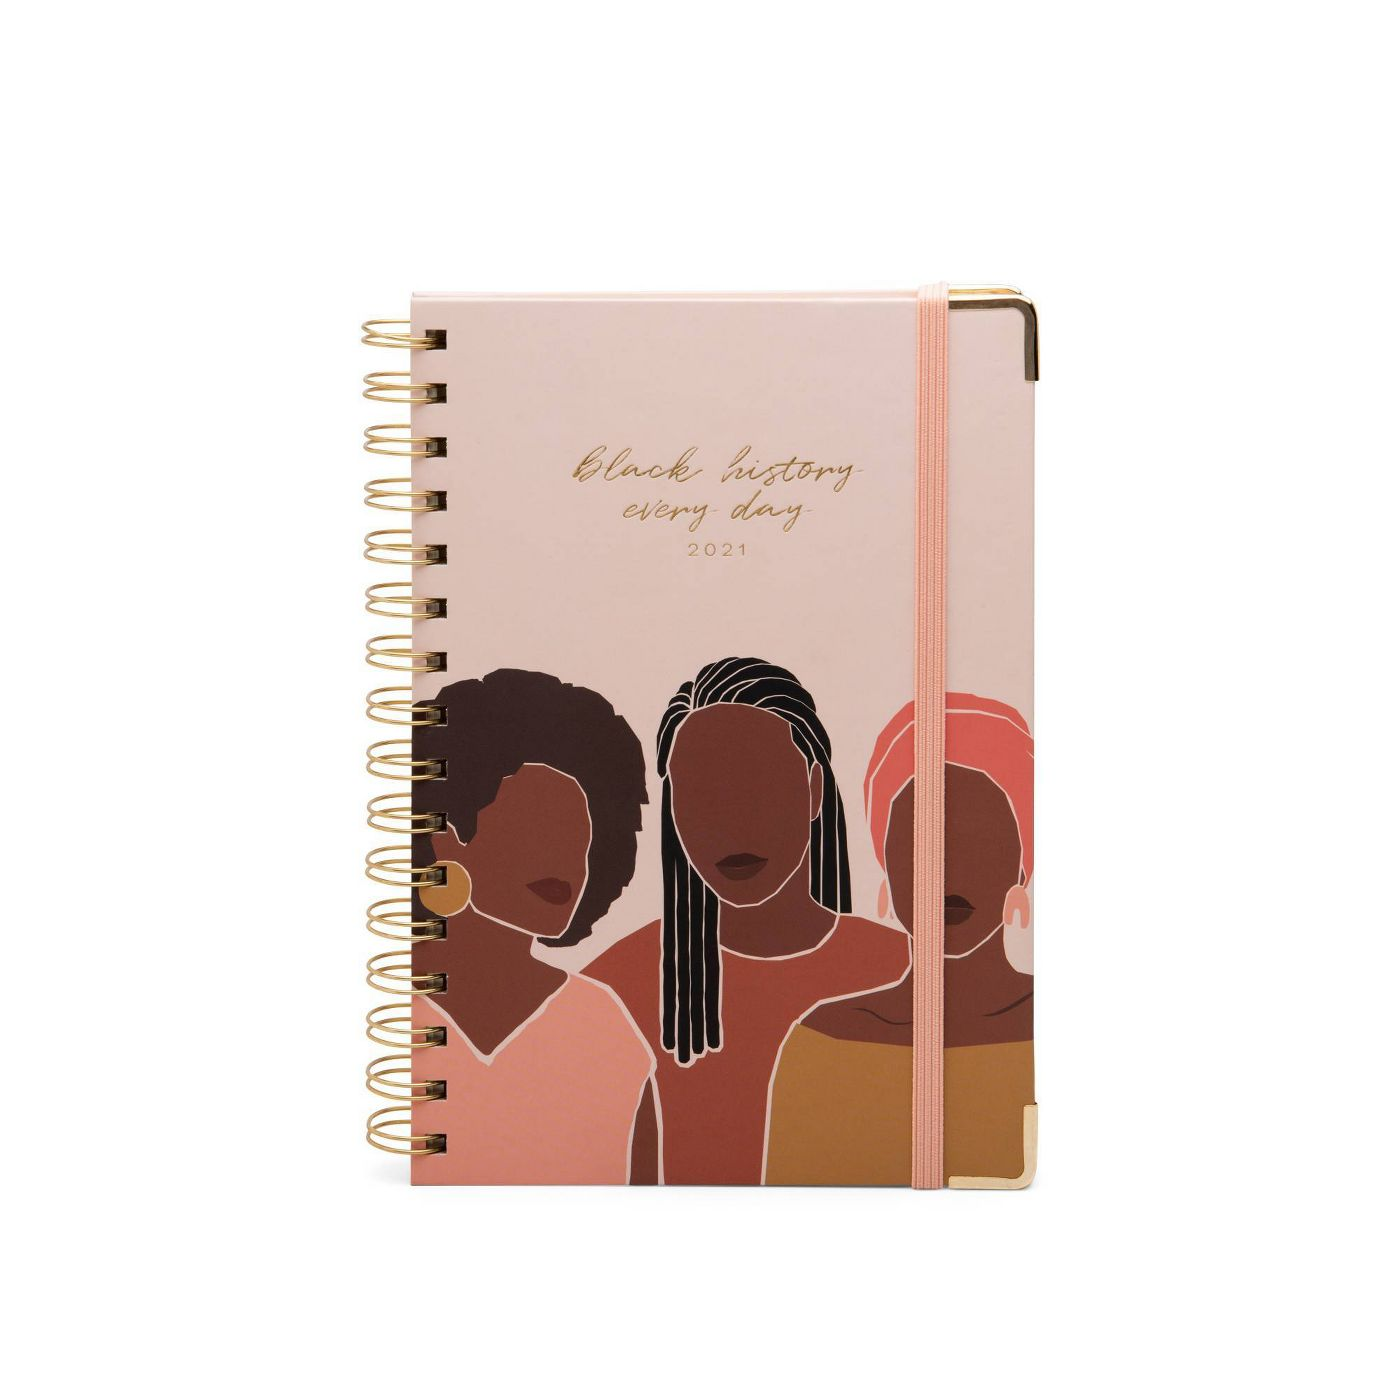 Black History Every Day Journal